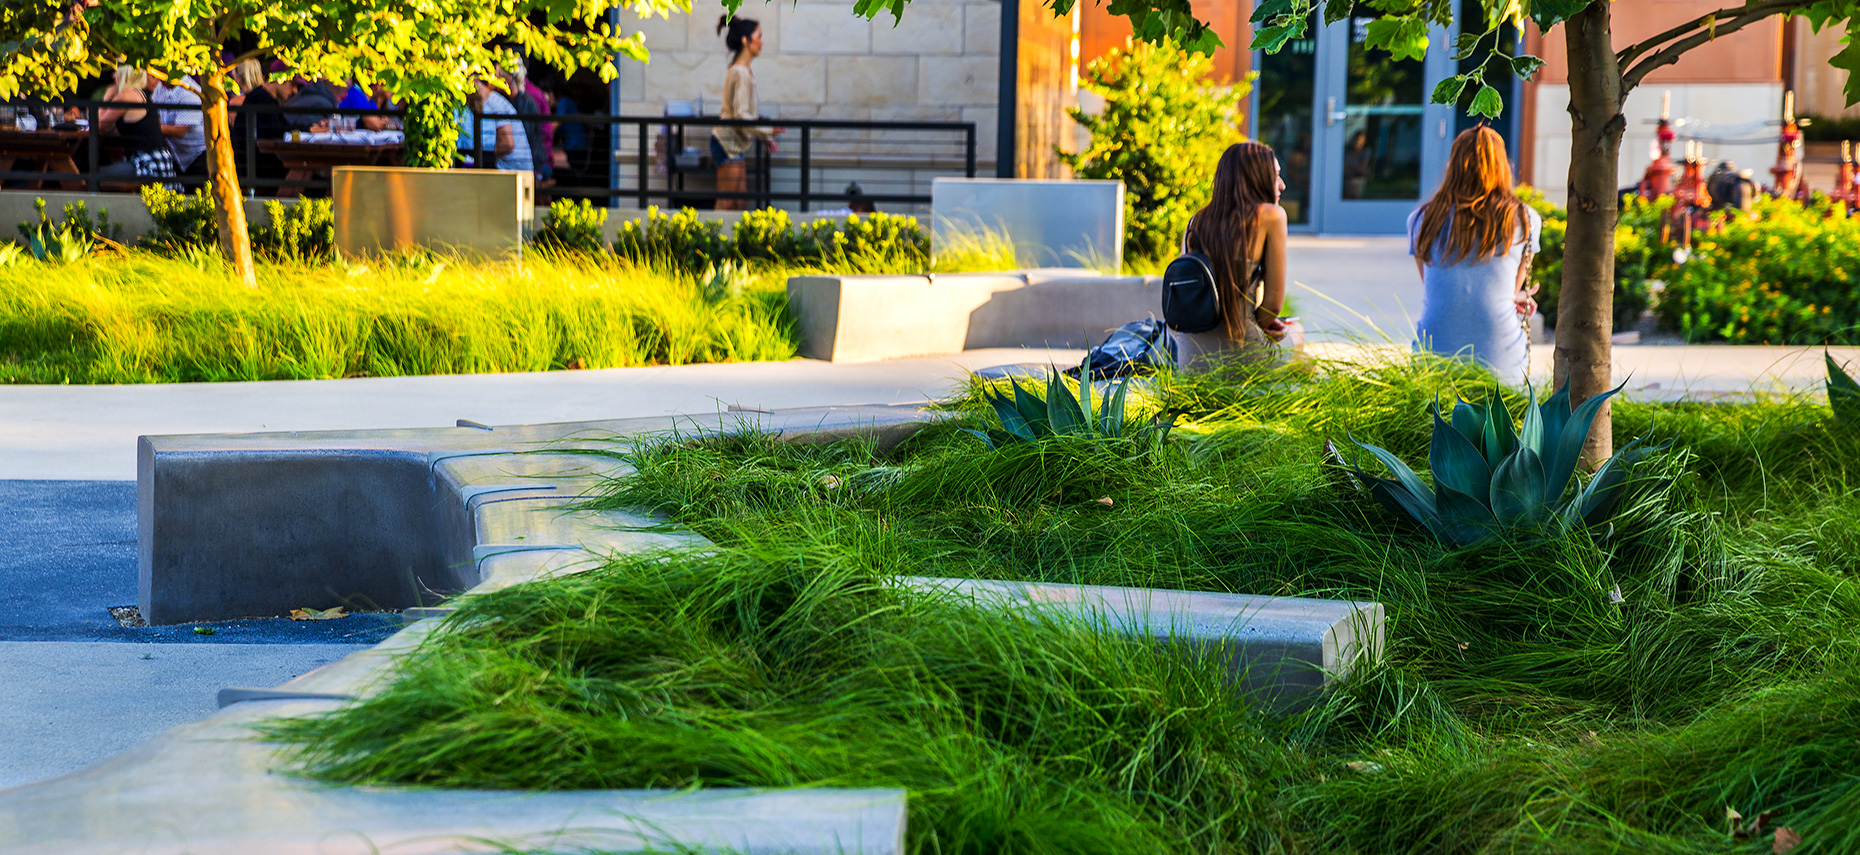 Good San Diego State University   South Campus Plaza